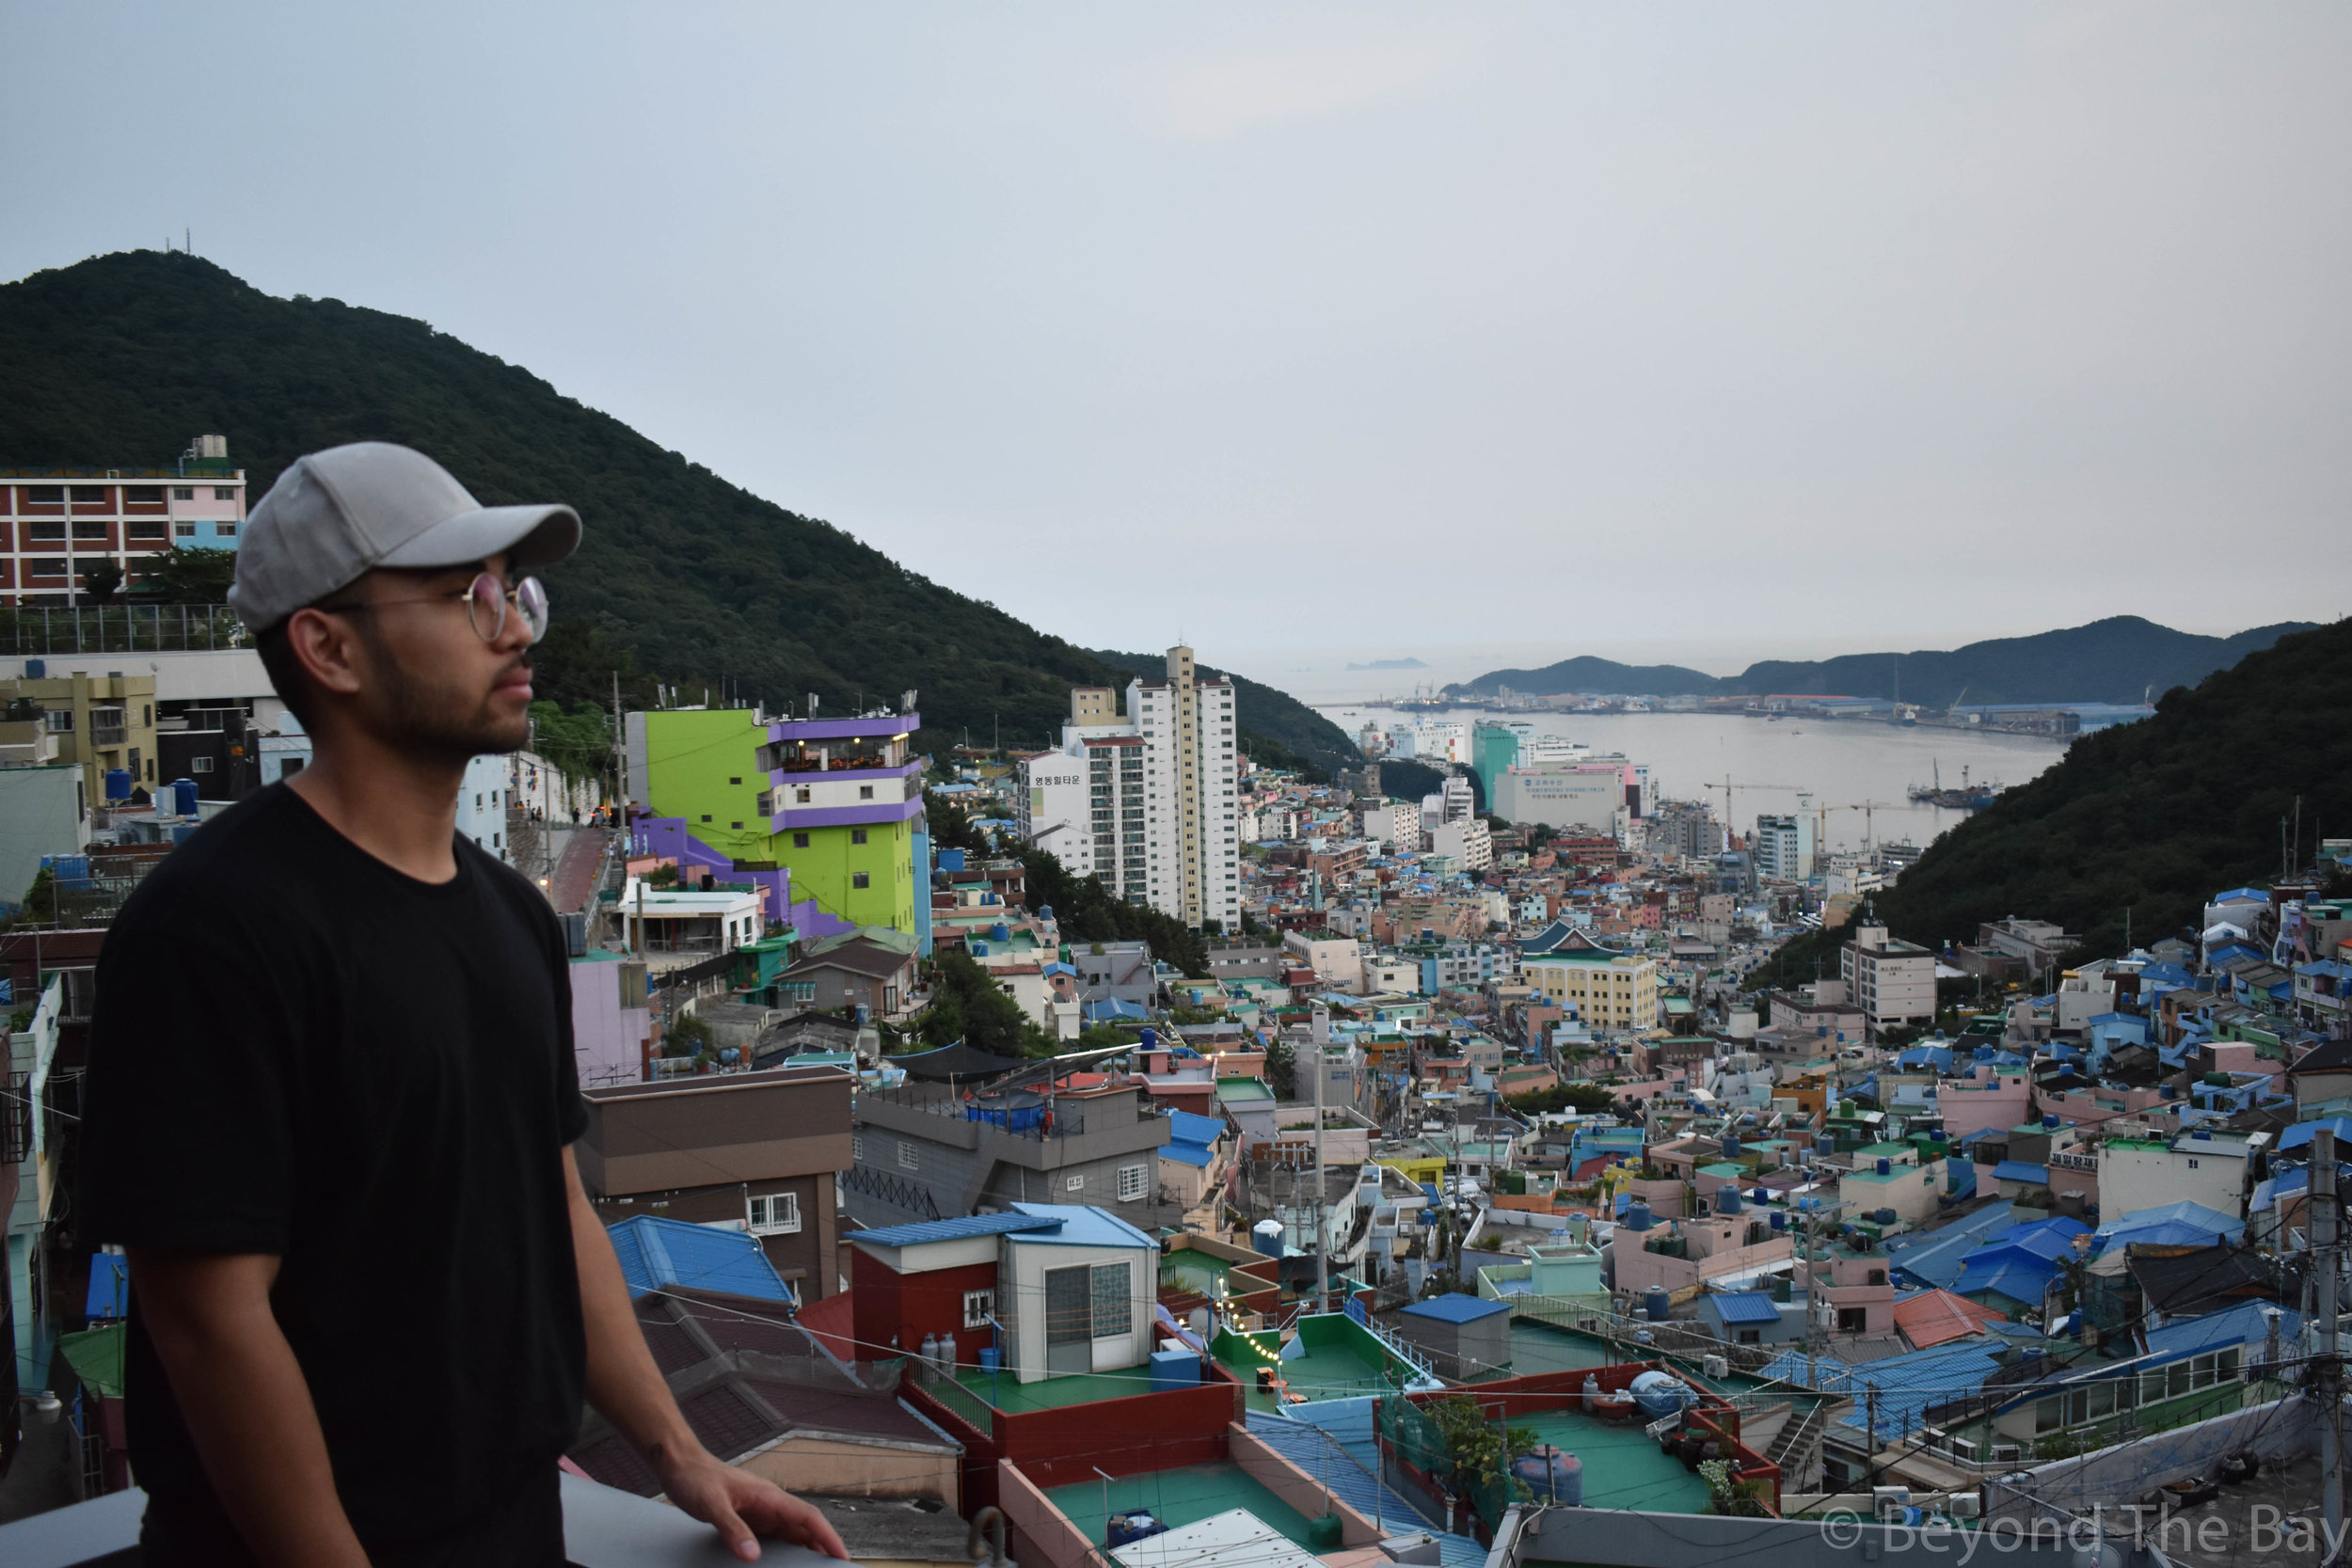 Another perspective on Gamcheon cultural village